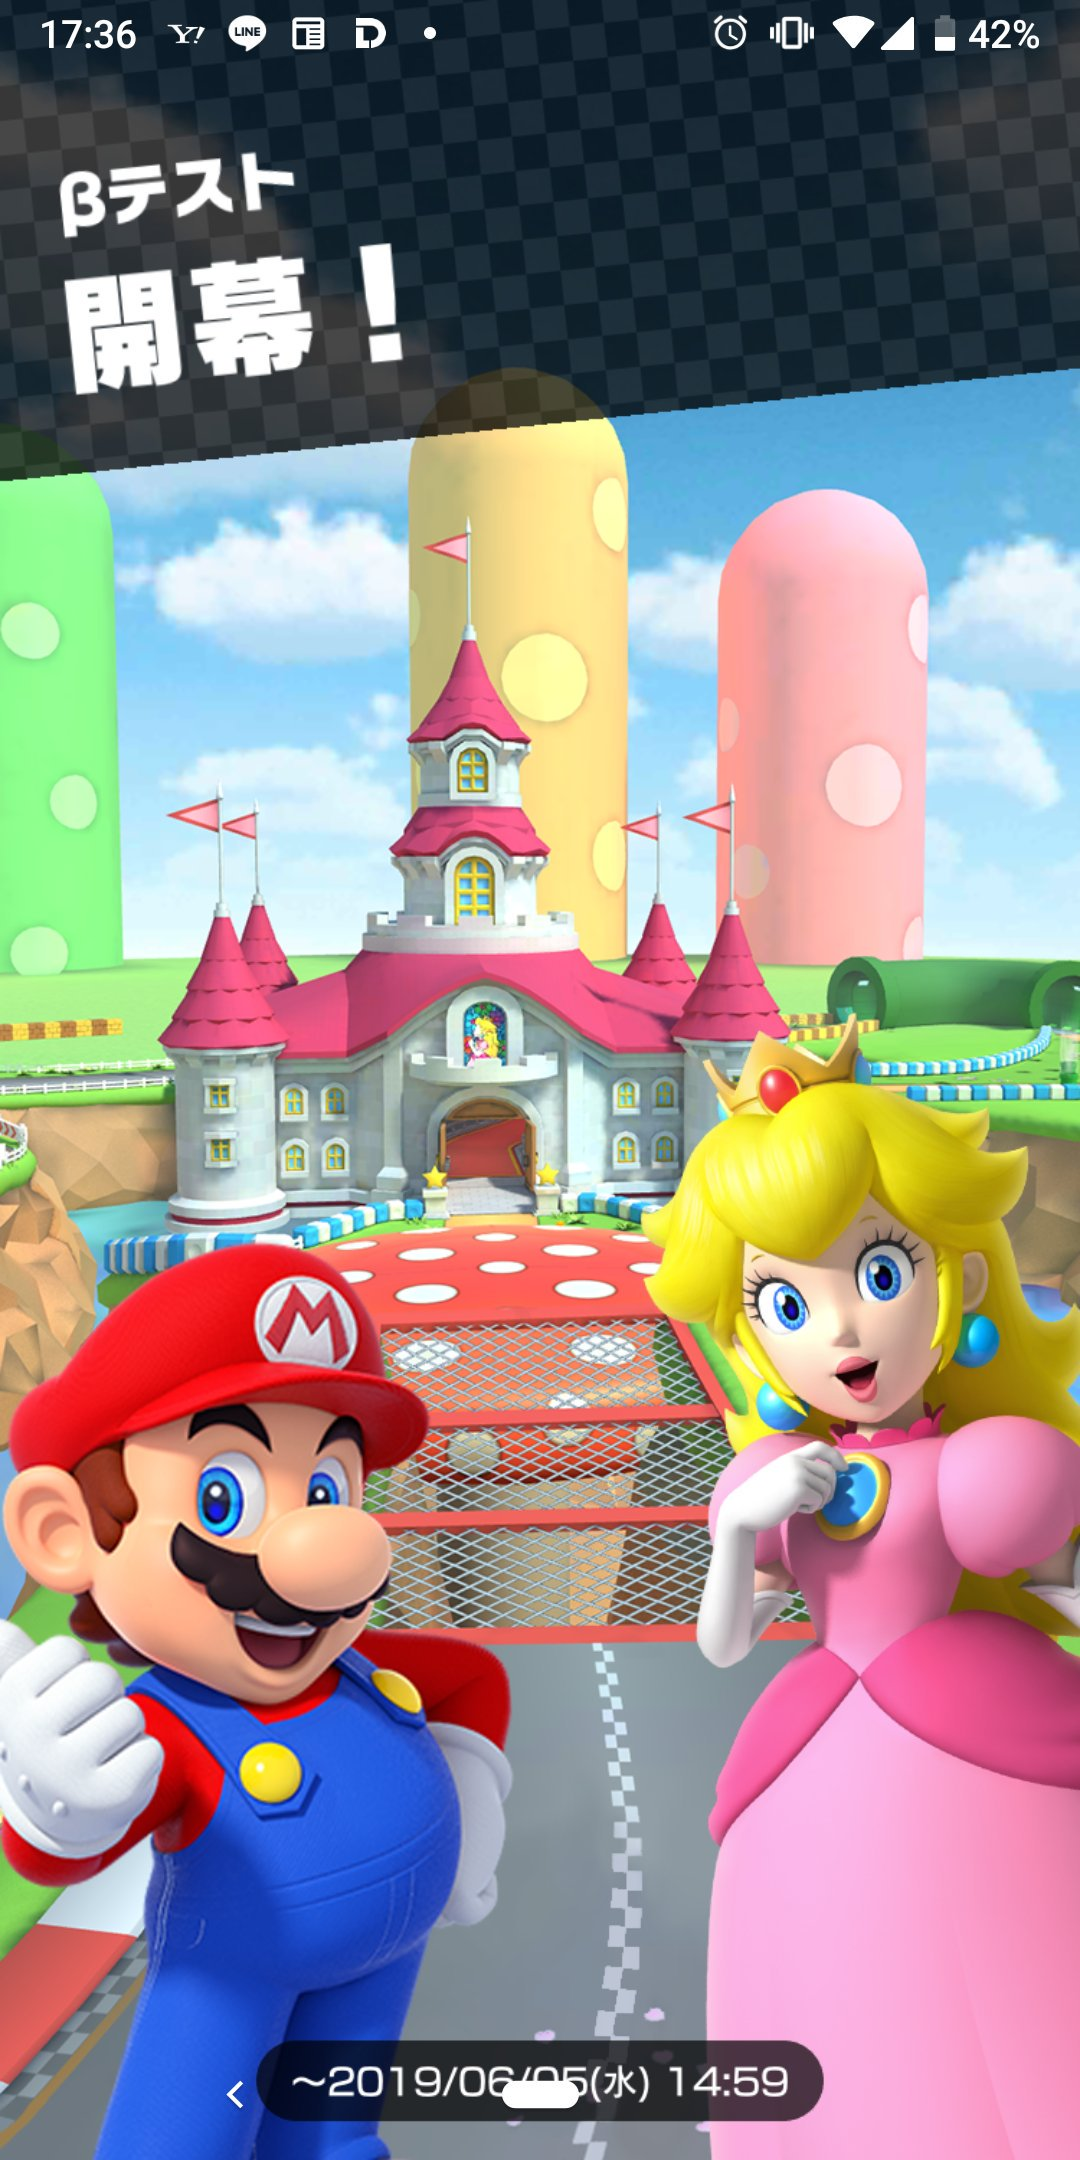 First Mario Kart Tour details and screenshots emerge from